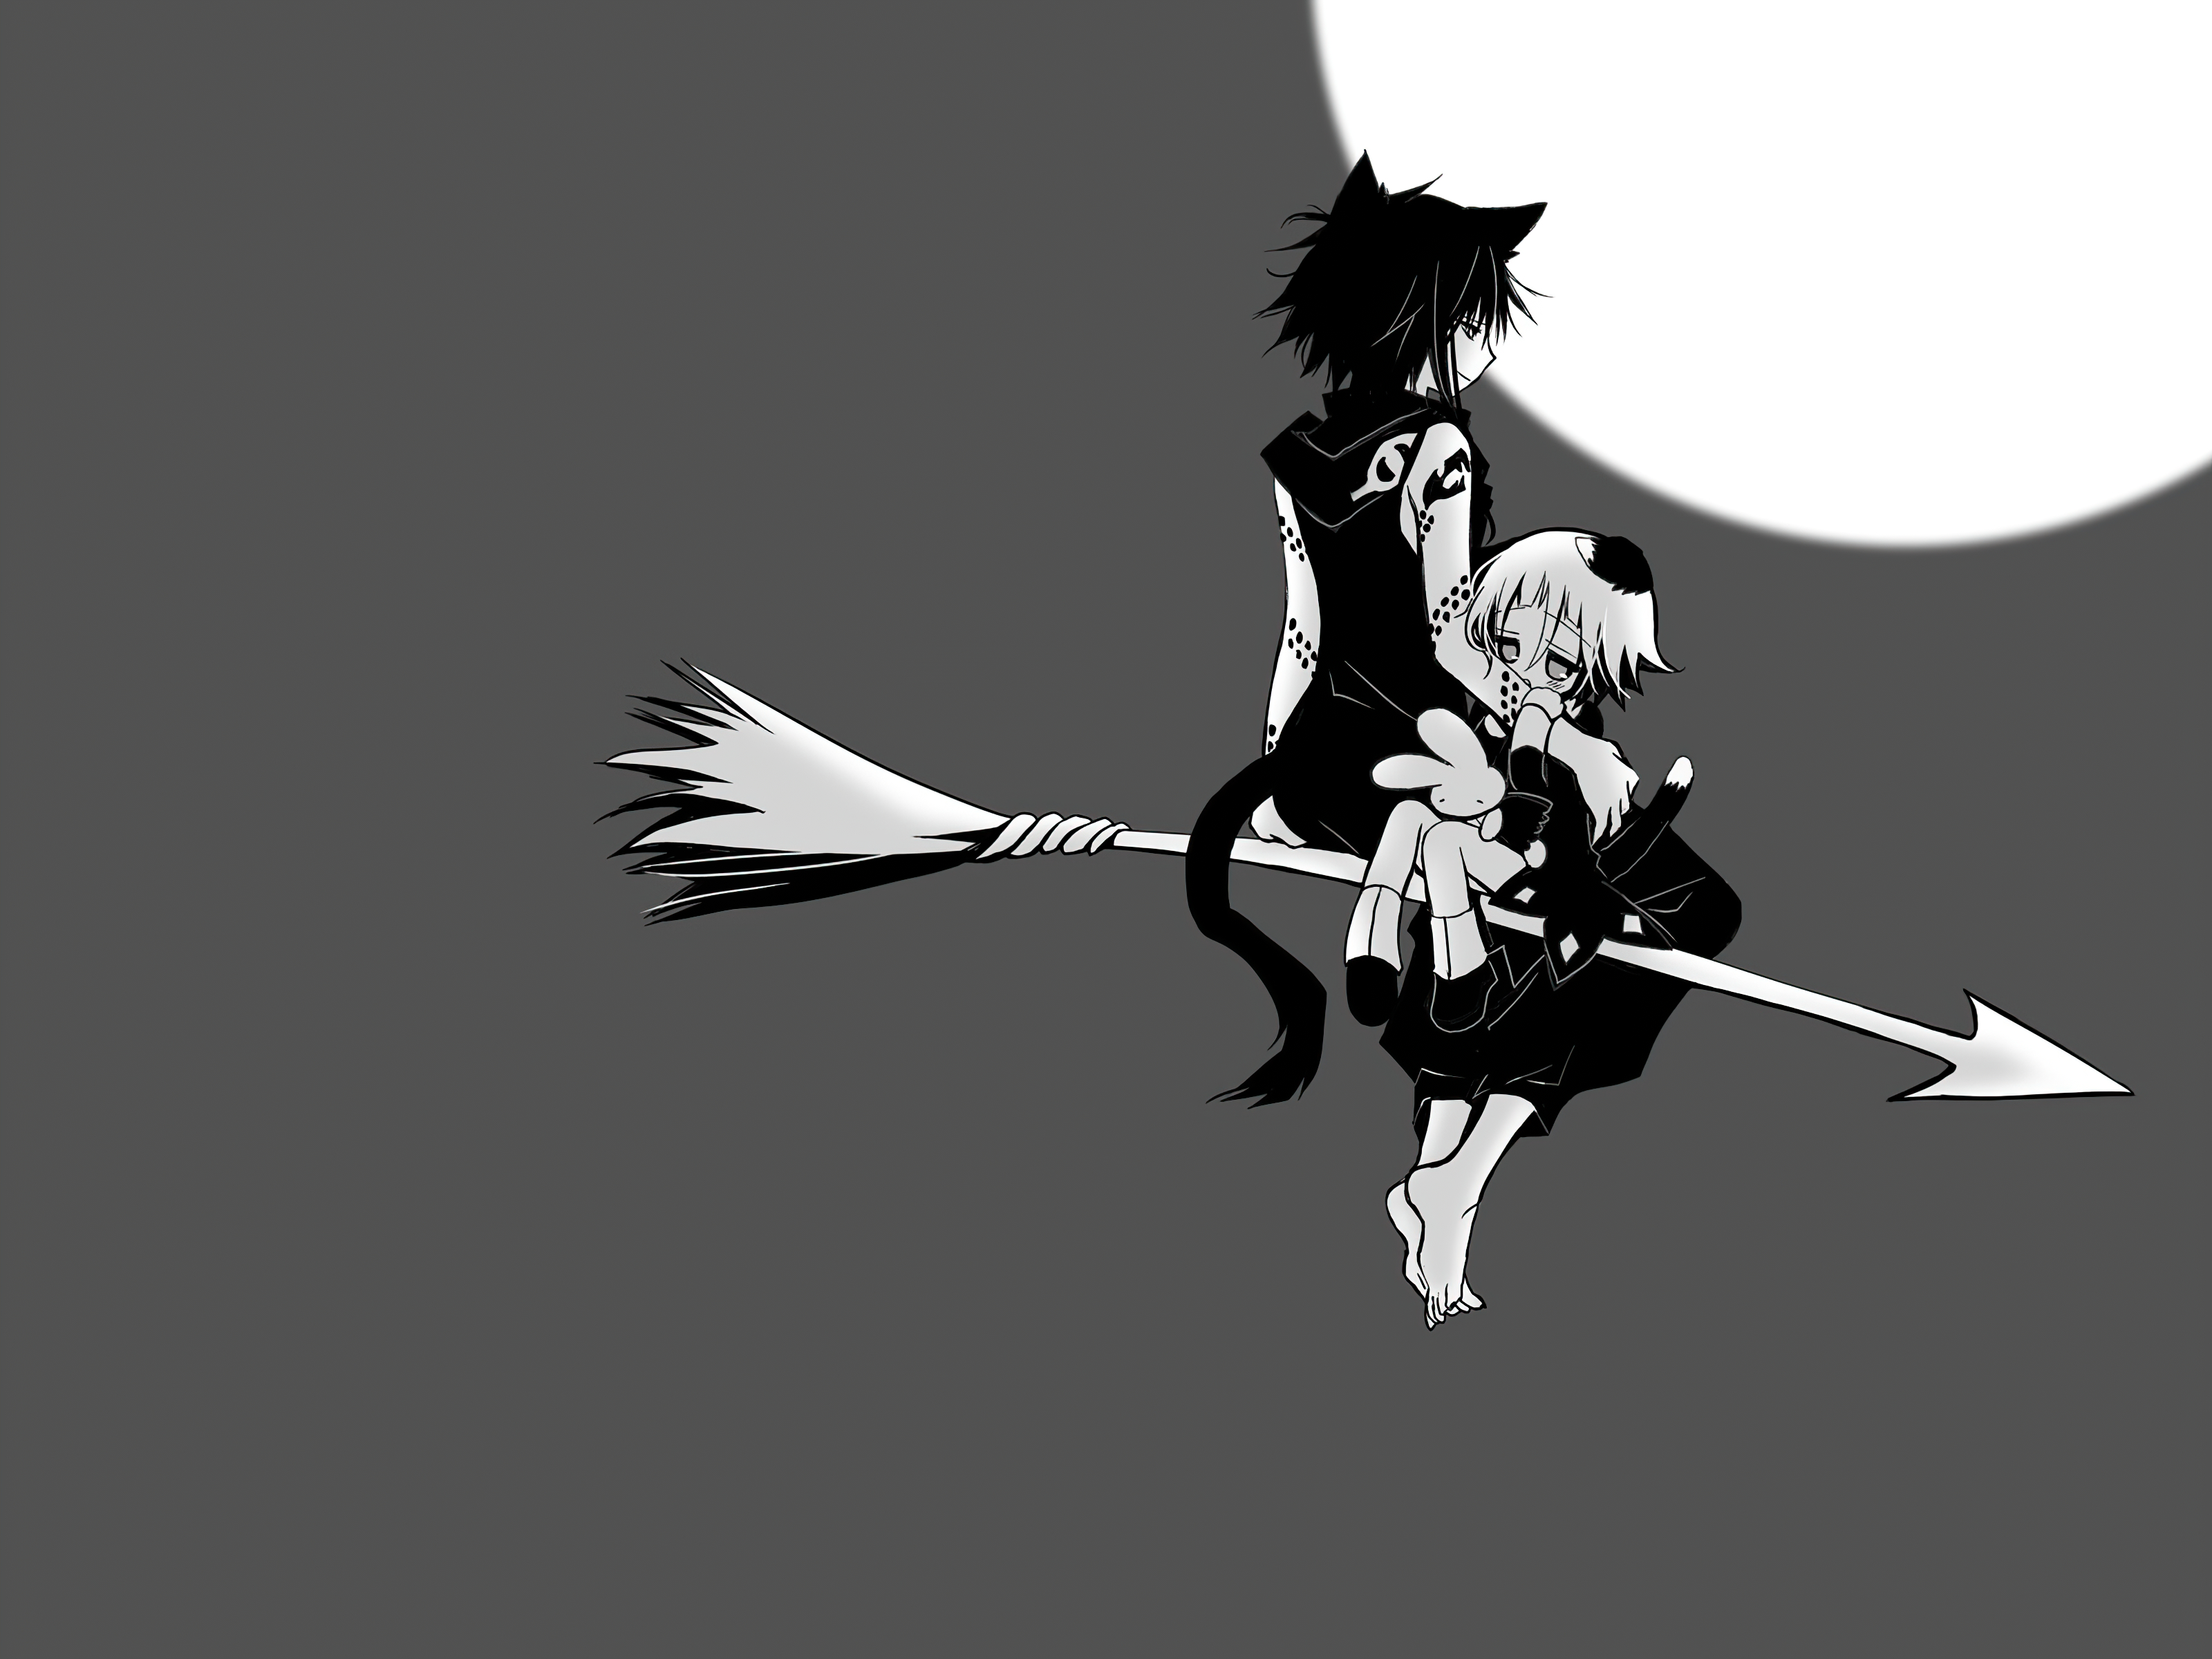 Soul Eater Hd Wallpaper Background Image 3200x2400 Id 844549